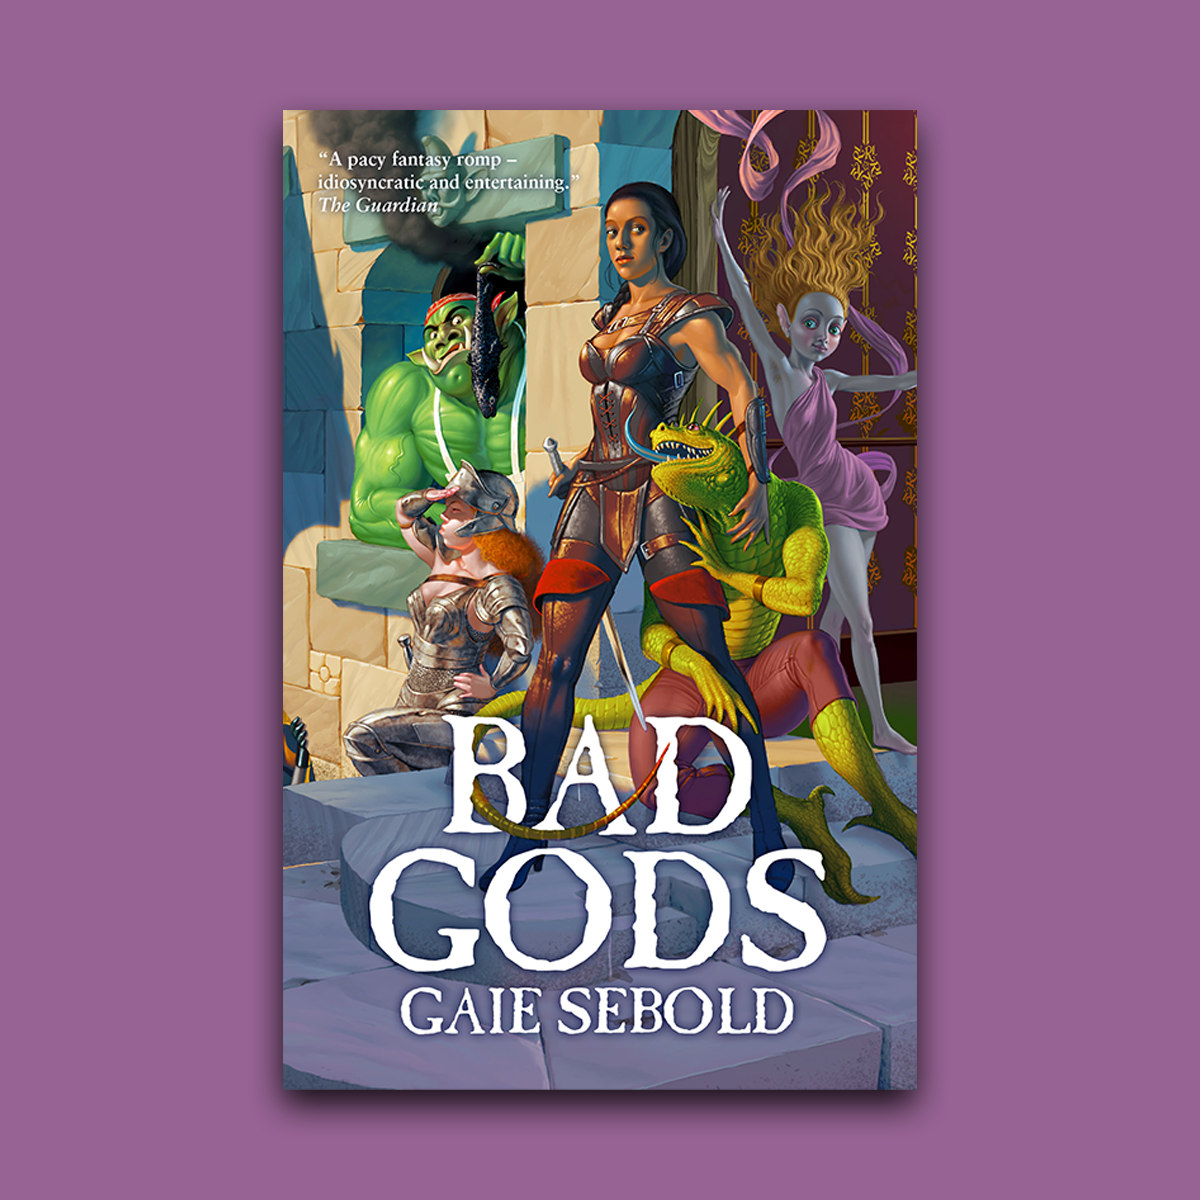 Revealing the cover for Bad Gods by Gaie Sebold